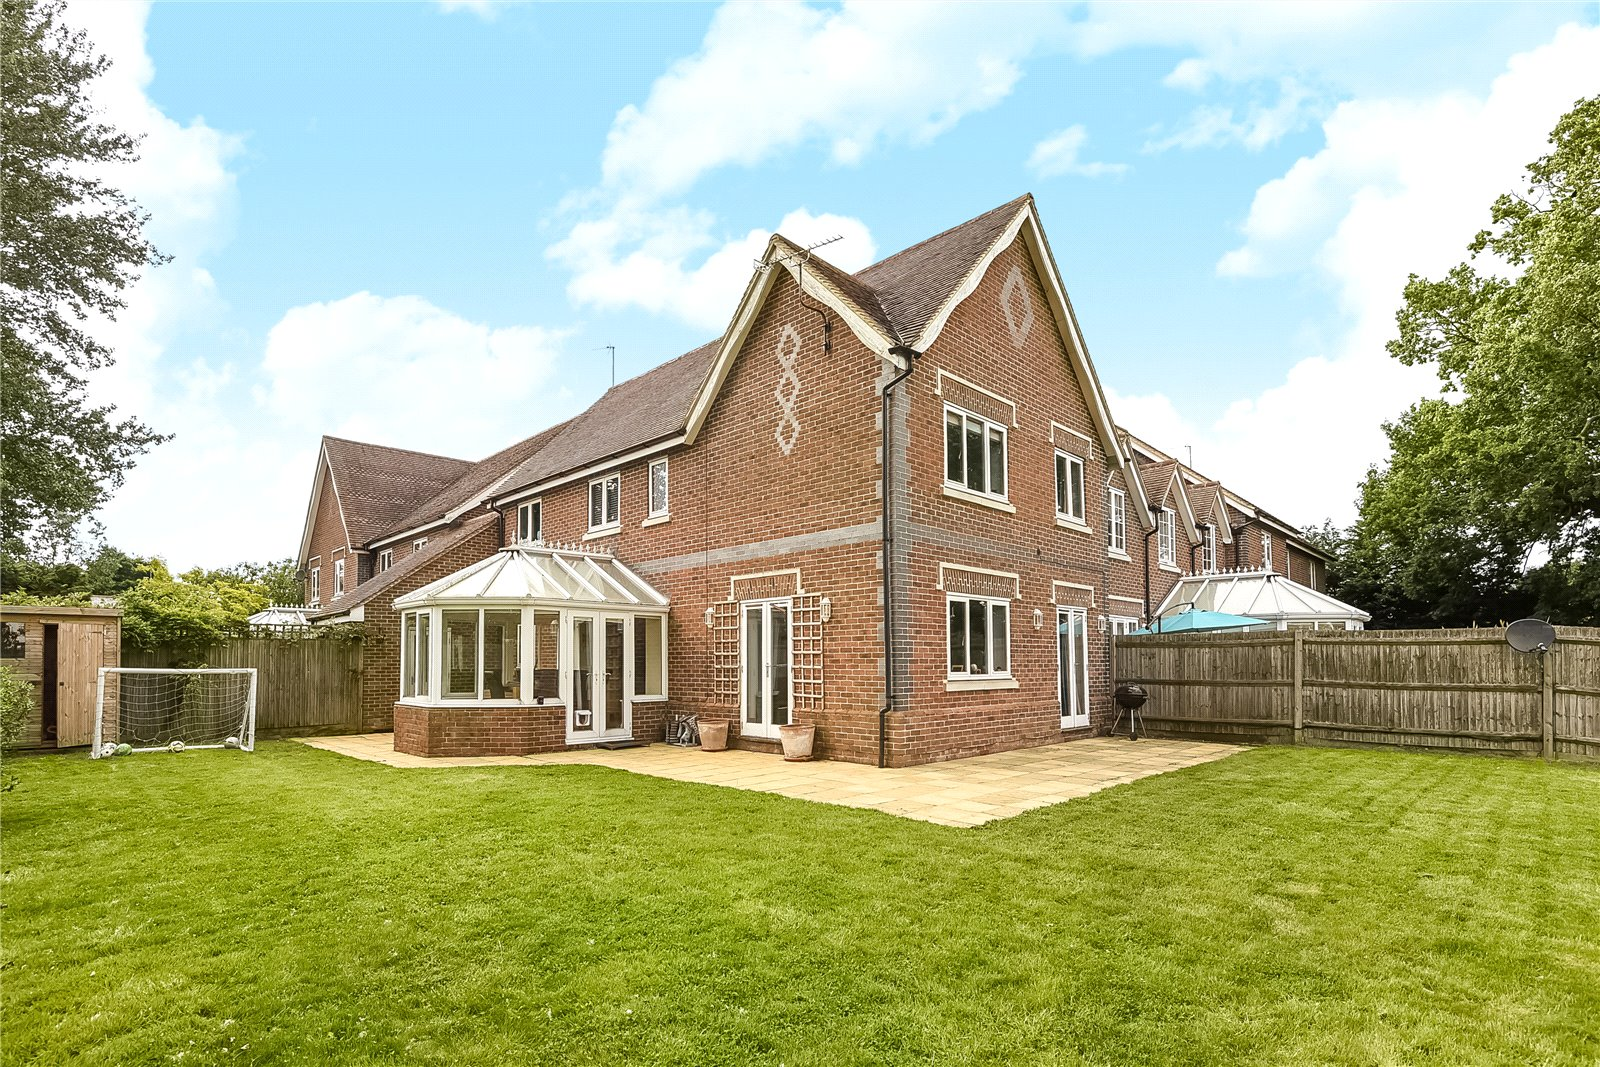 4 Bedrooms Link Detached House for sale in Alder Mews, Sindlesham, Wokingham, Berkshire, RG41